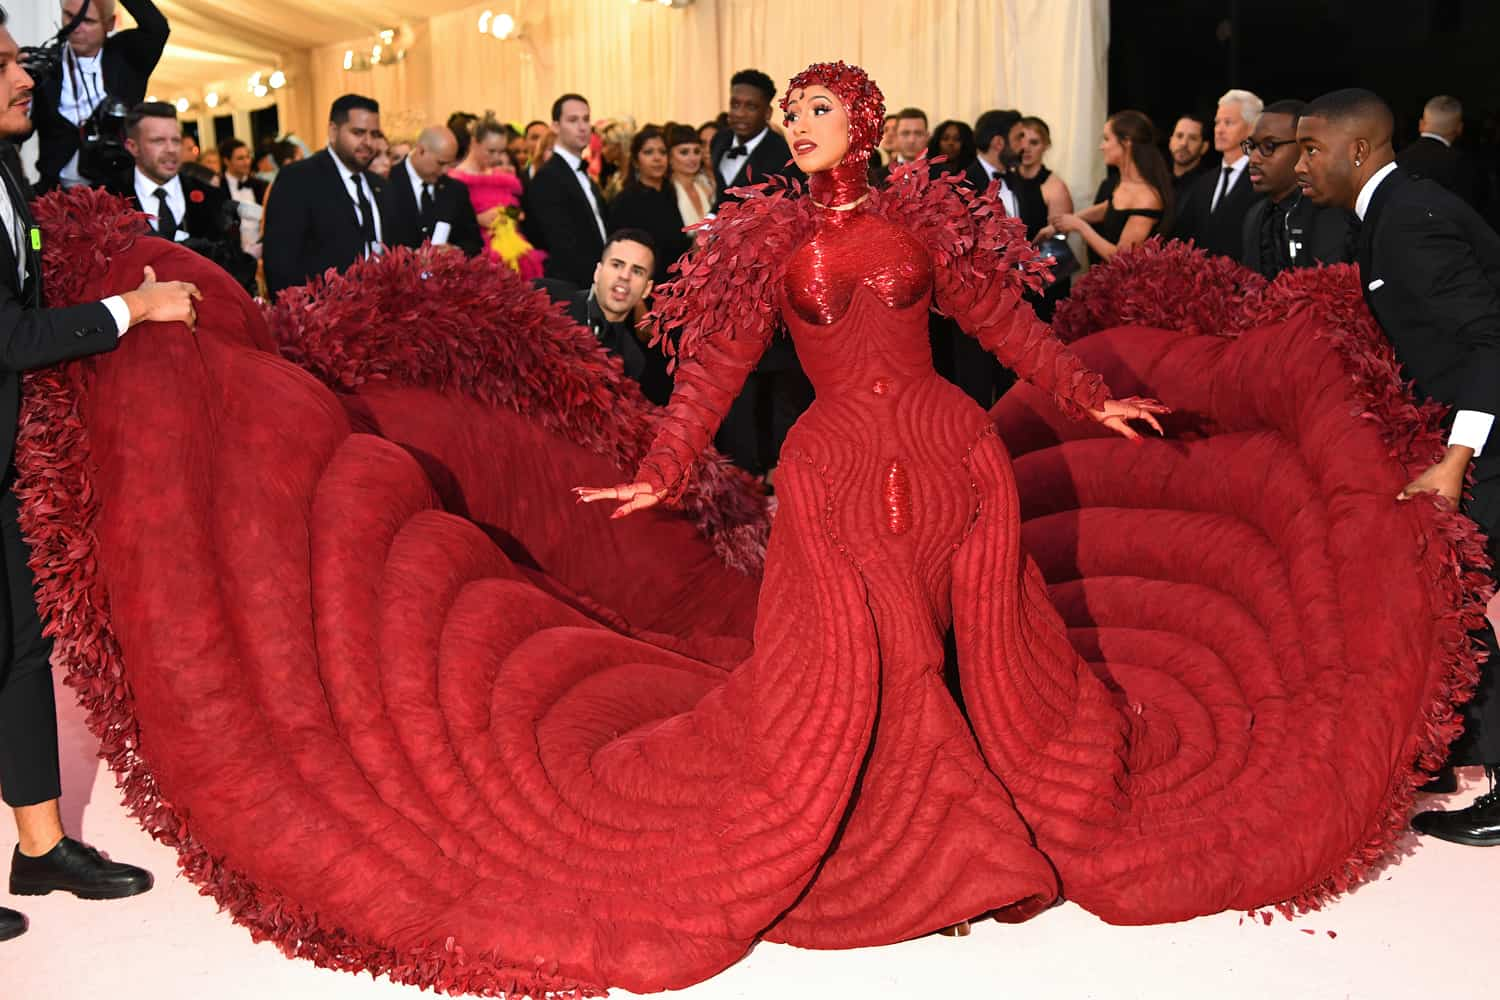 Cardi+B+in+Thom+Browne.+This+definitely+take+the+prize+of+being+one+of+the+craziest+outfits+we+have+seen%2C+as+usual+Cardi+B+pulling+through+with+another+amazing+and+crazy+outfit+and+it+never+disappoints.++10%2F10+